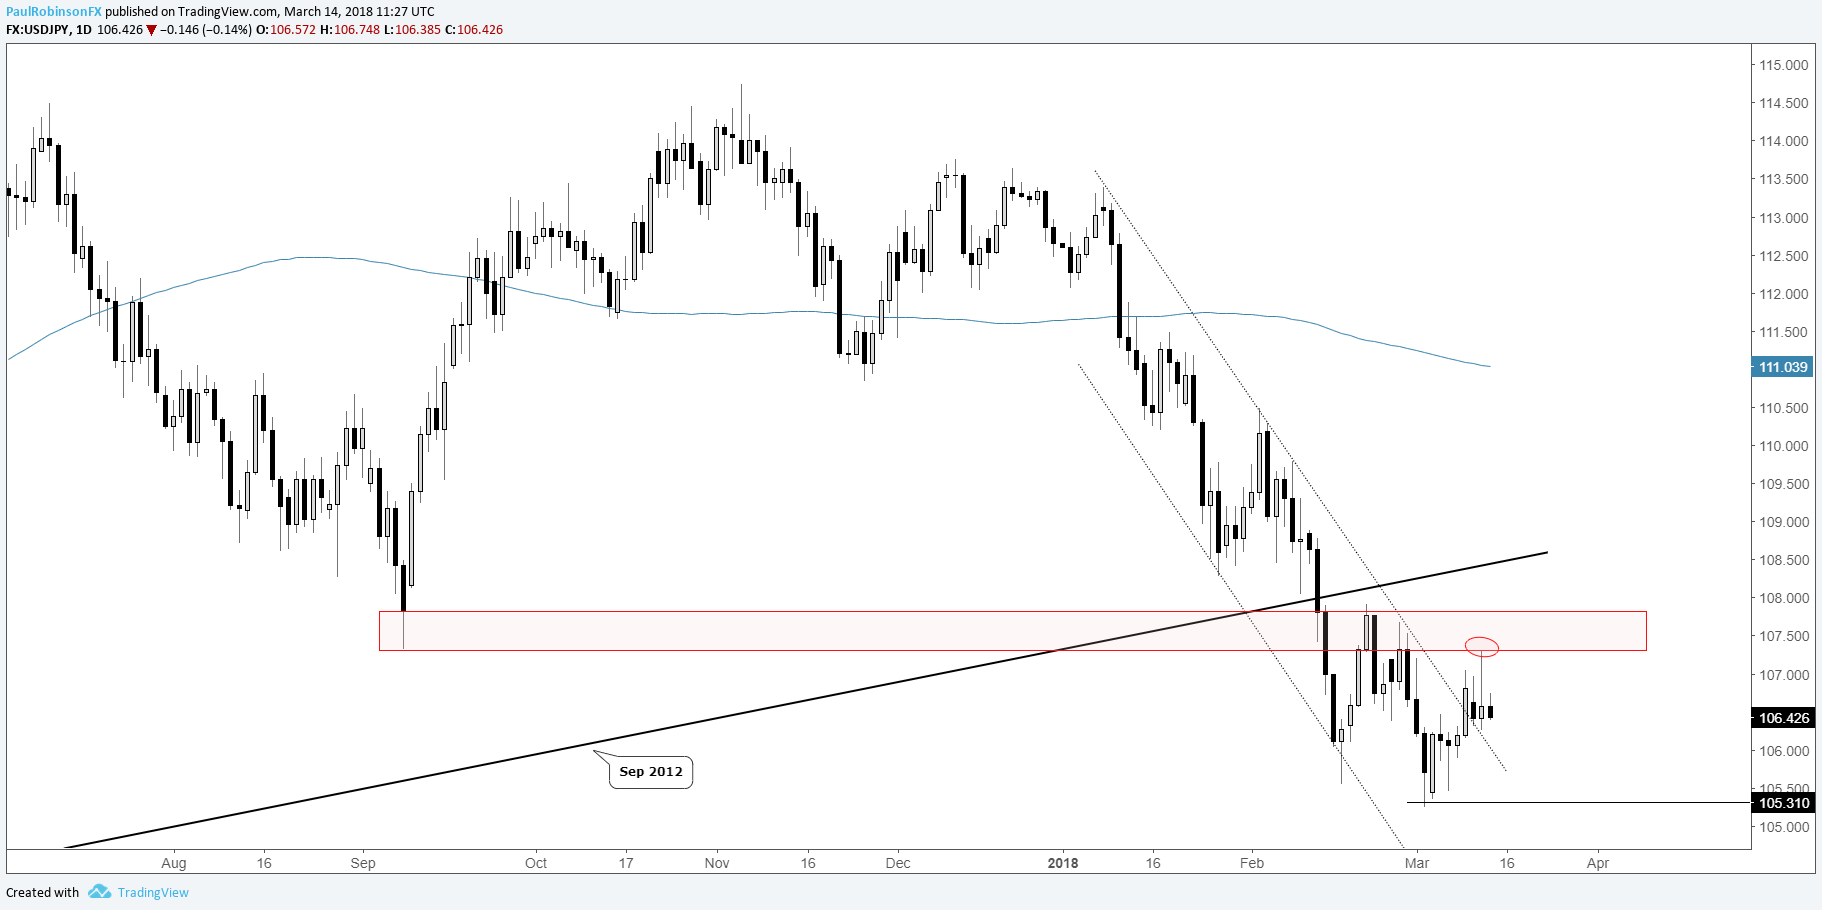 usd/jpy daily chart (rejected at resistance in downtrend)